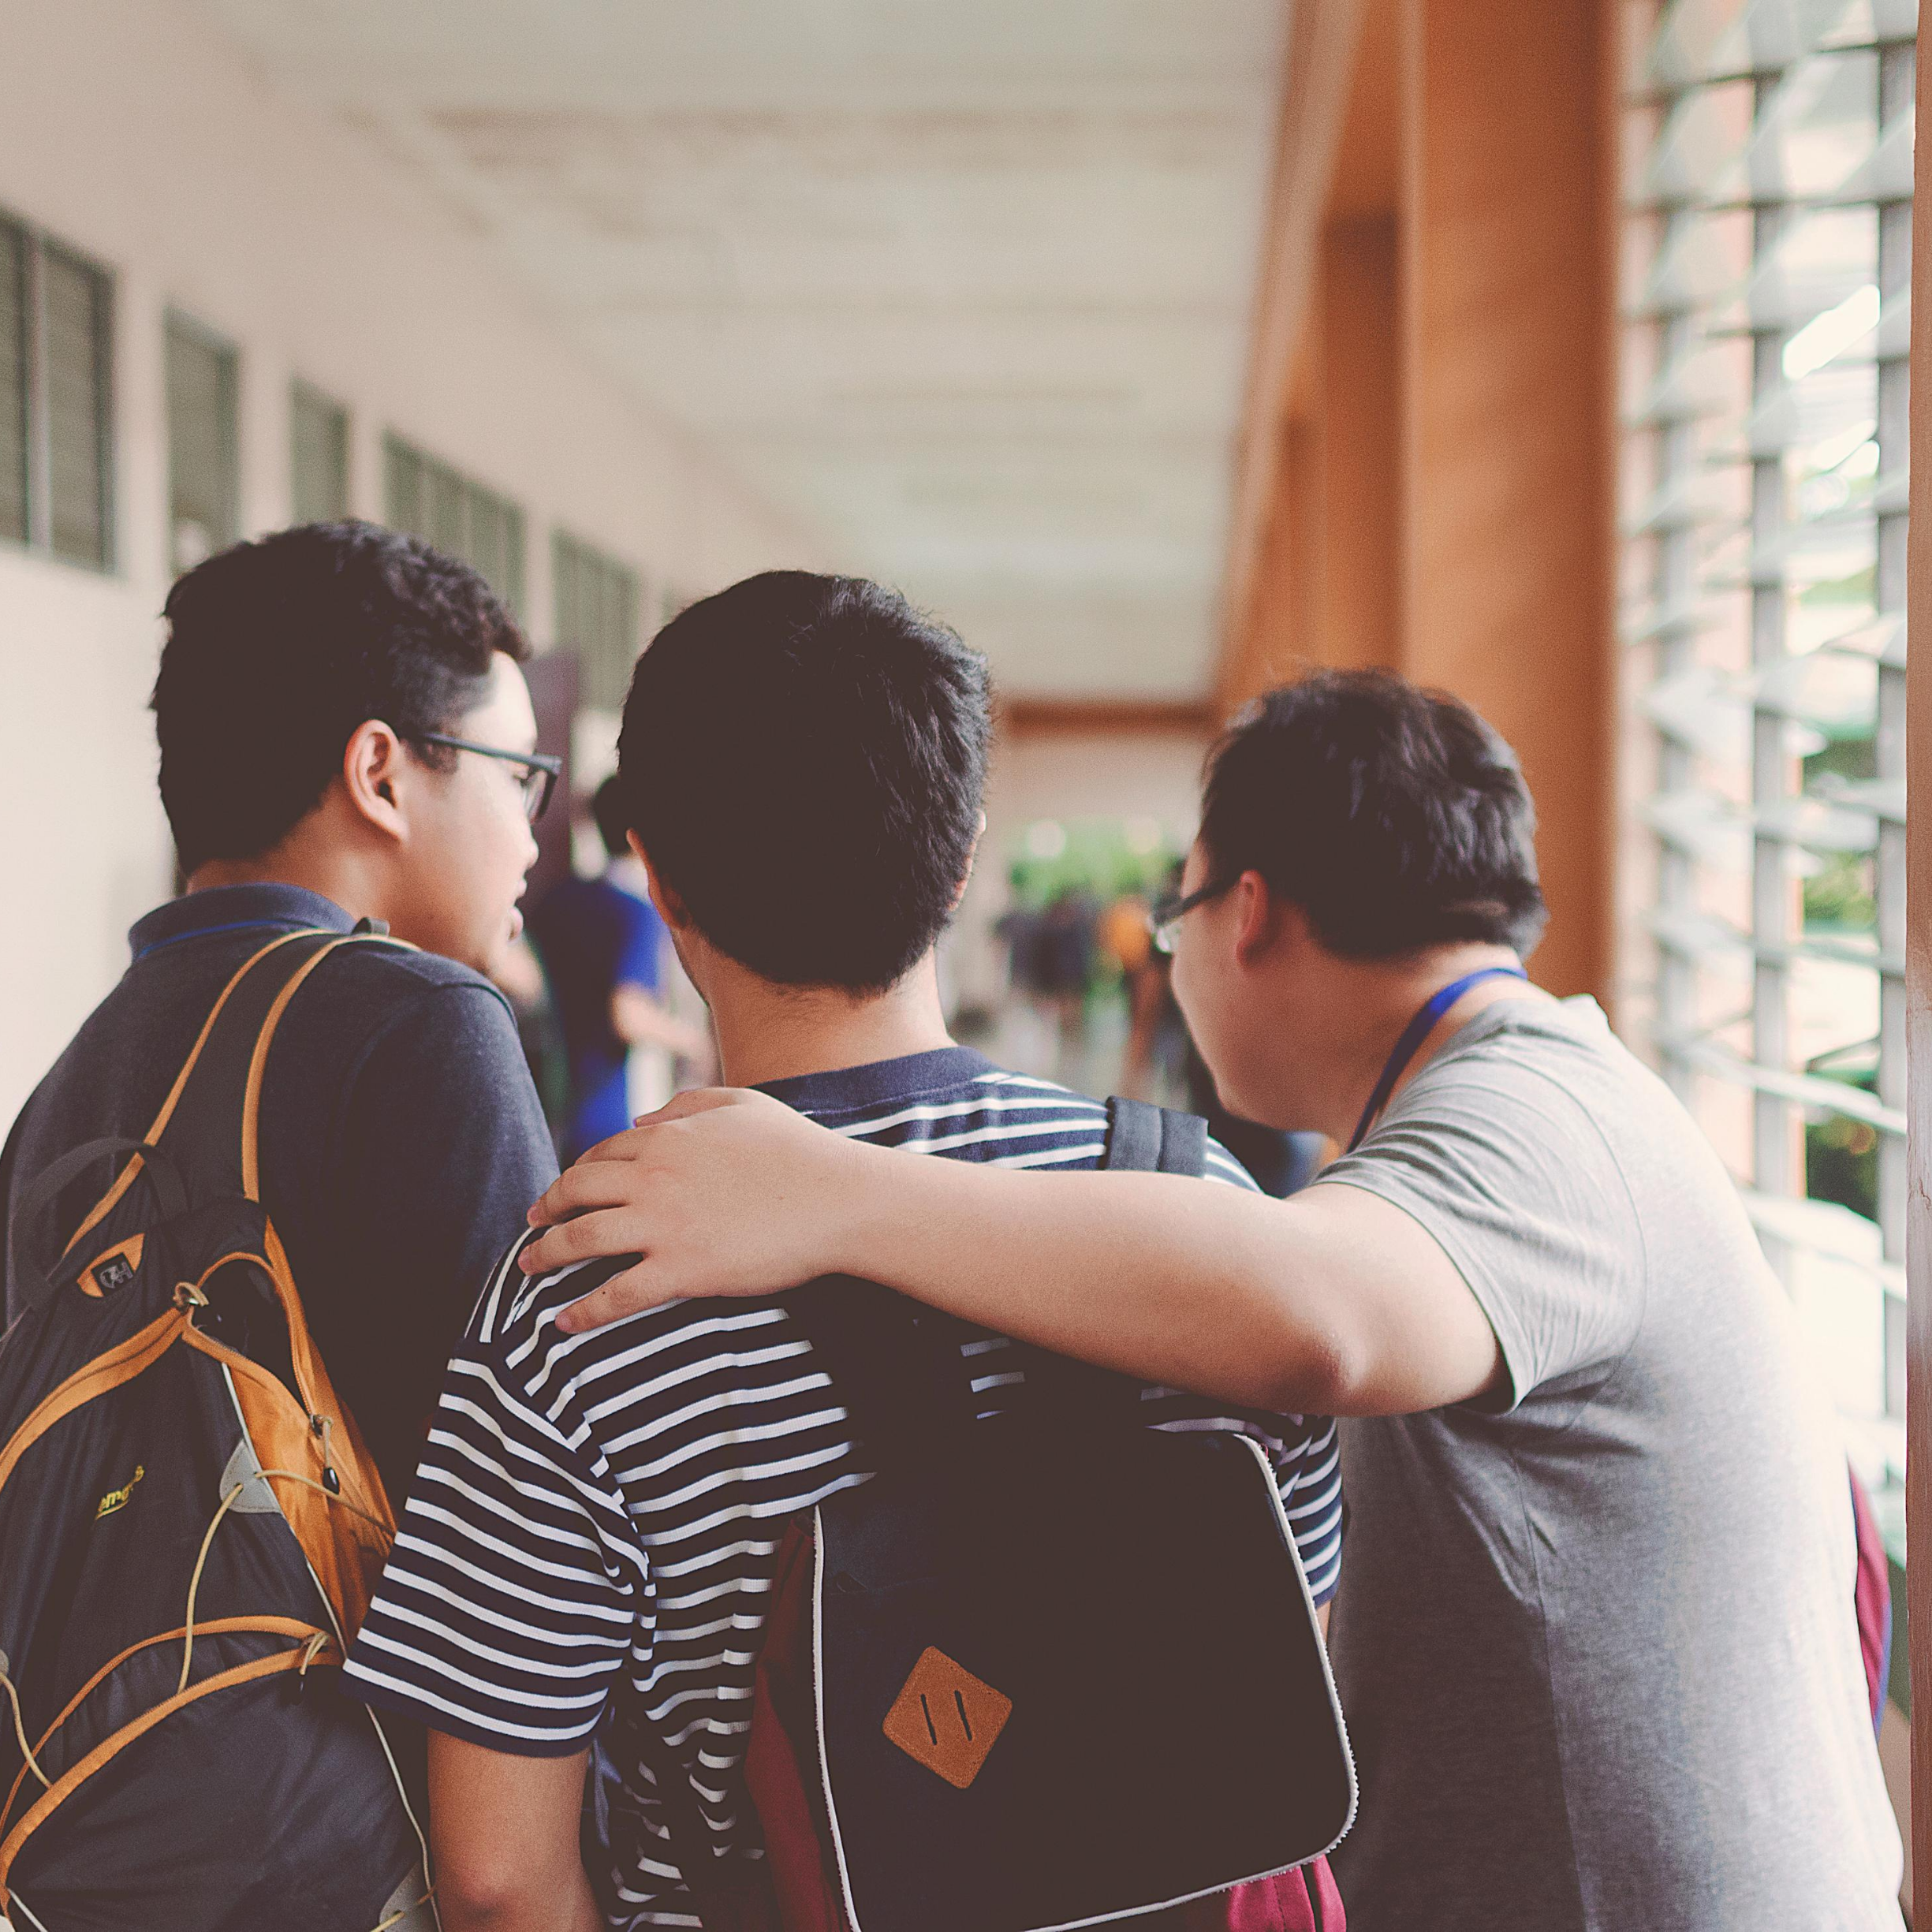 """Three men walking in hallway with backs towards screens, two with back packs, one in striped shirt, one in grey shirt and one in navy shirt, represents """"Connect with Your Peers"""" program"""